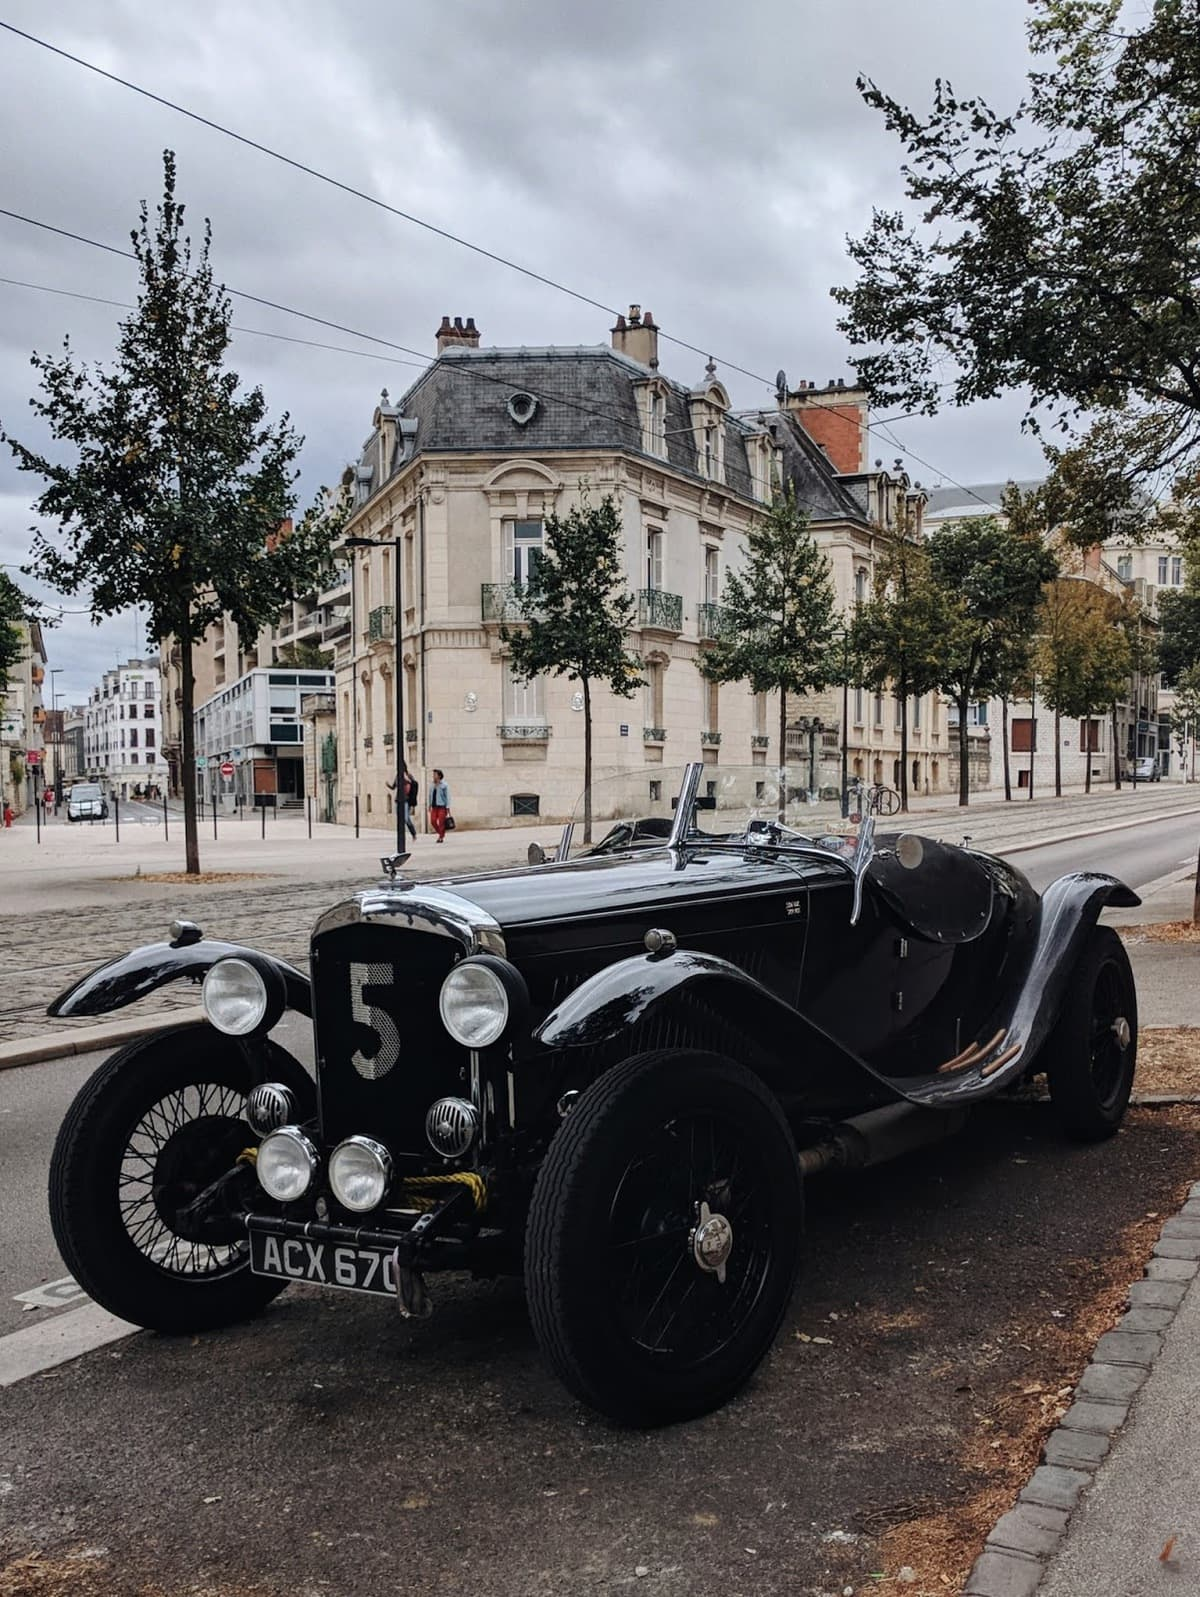 Black vintage car in Dijon, France